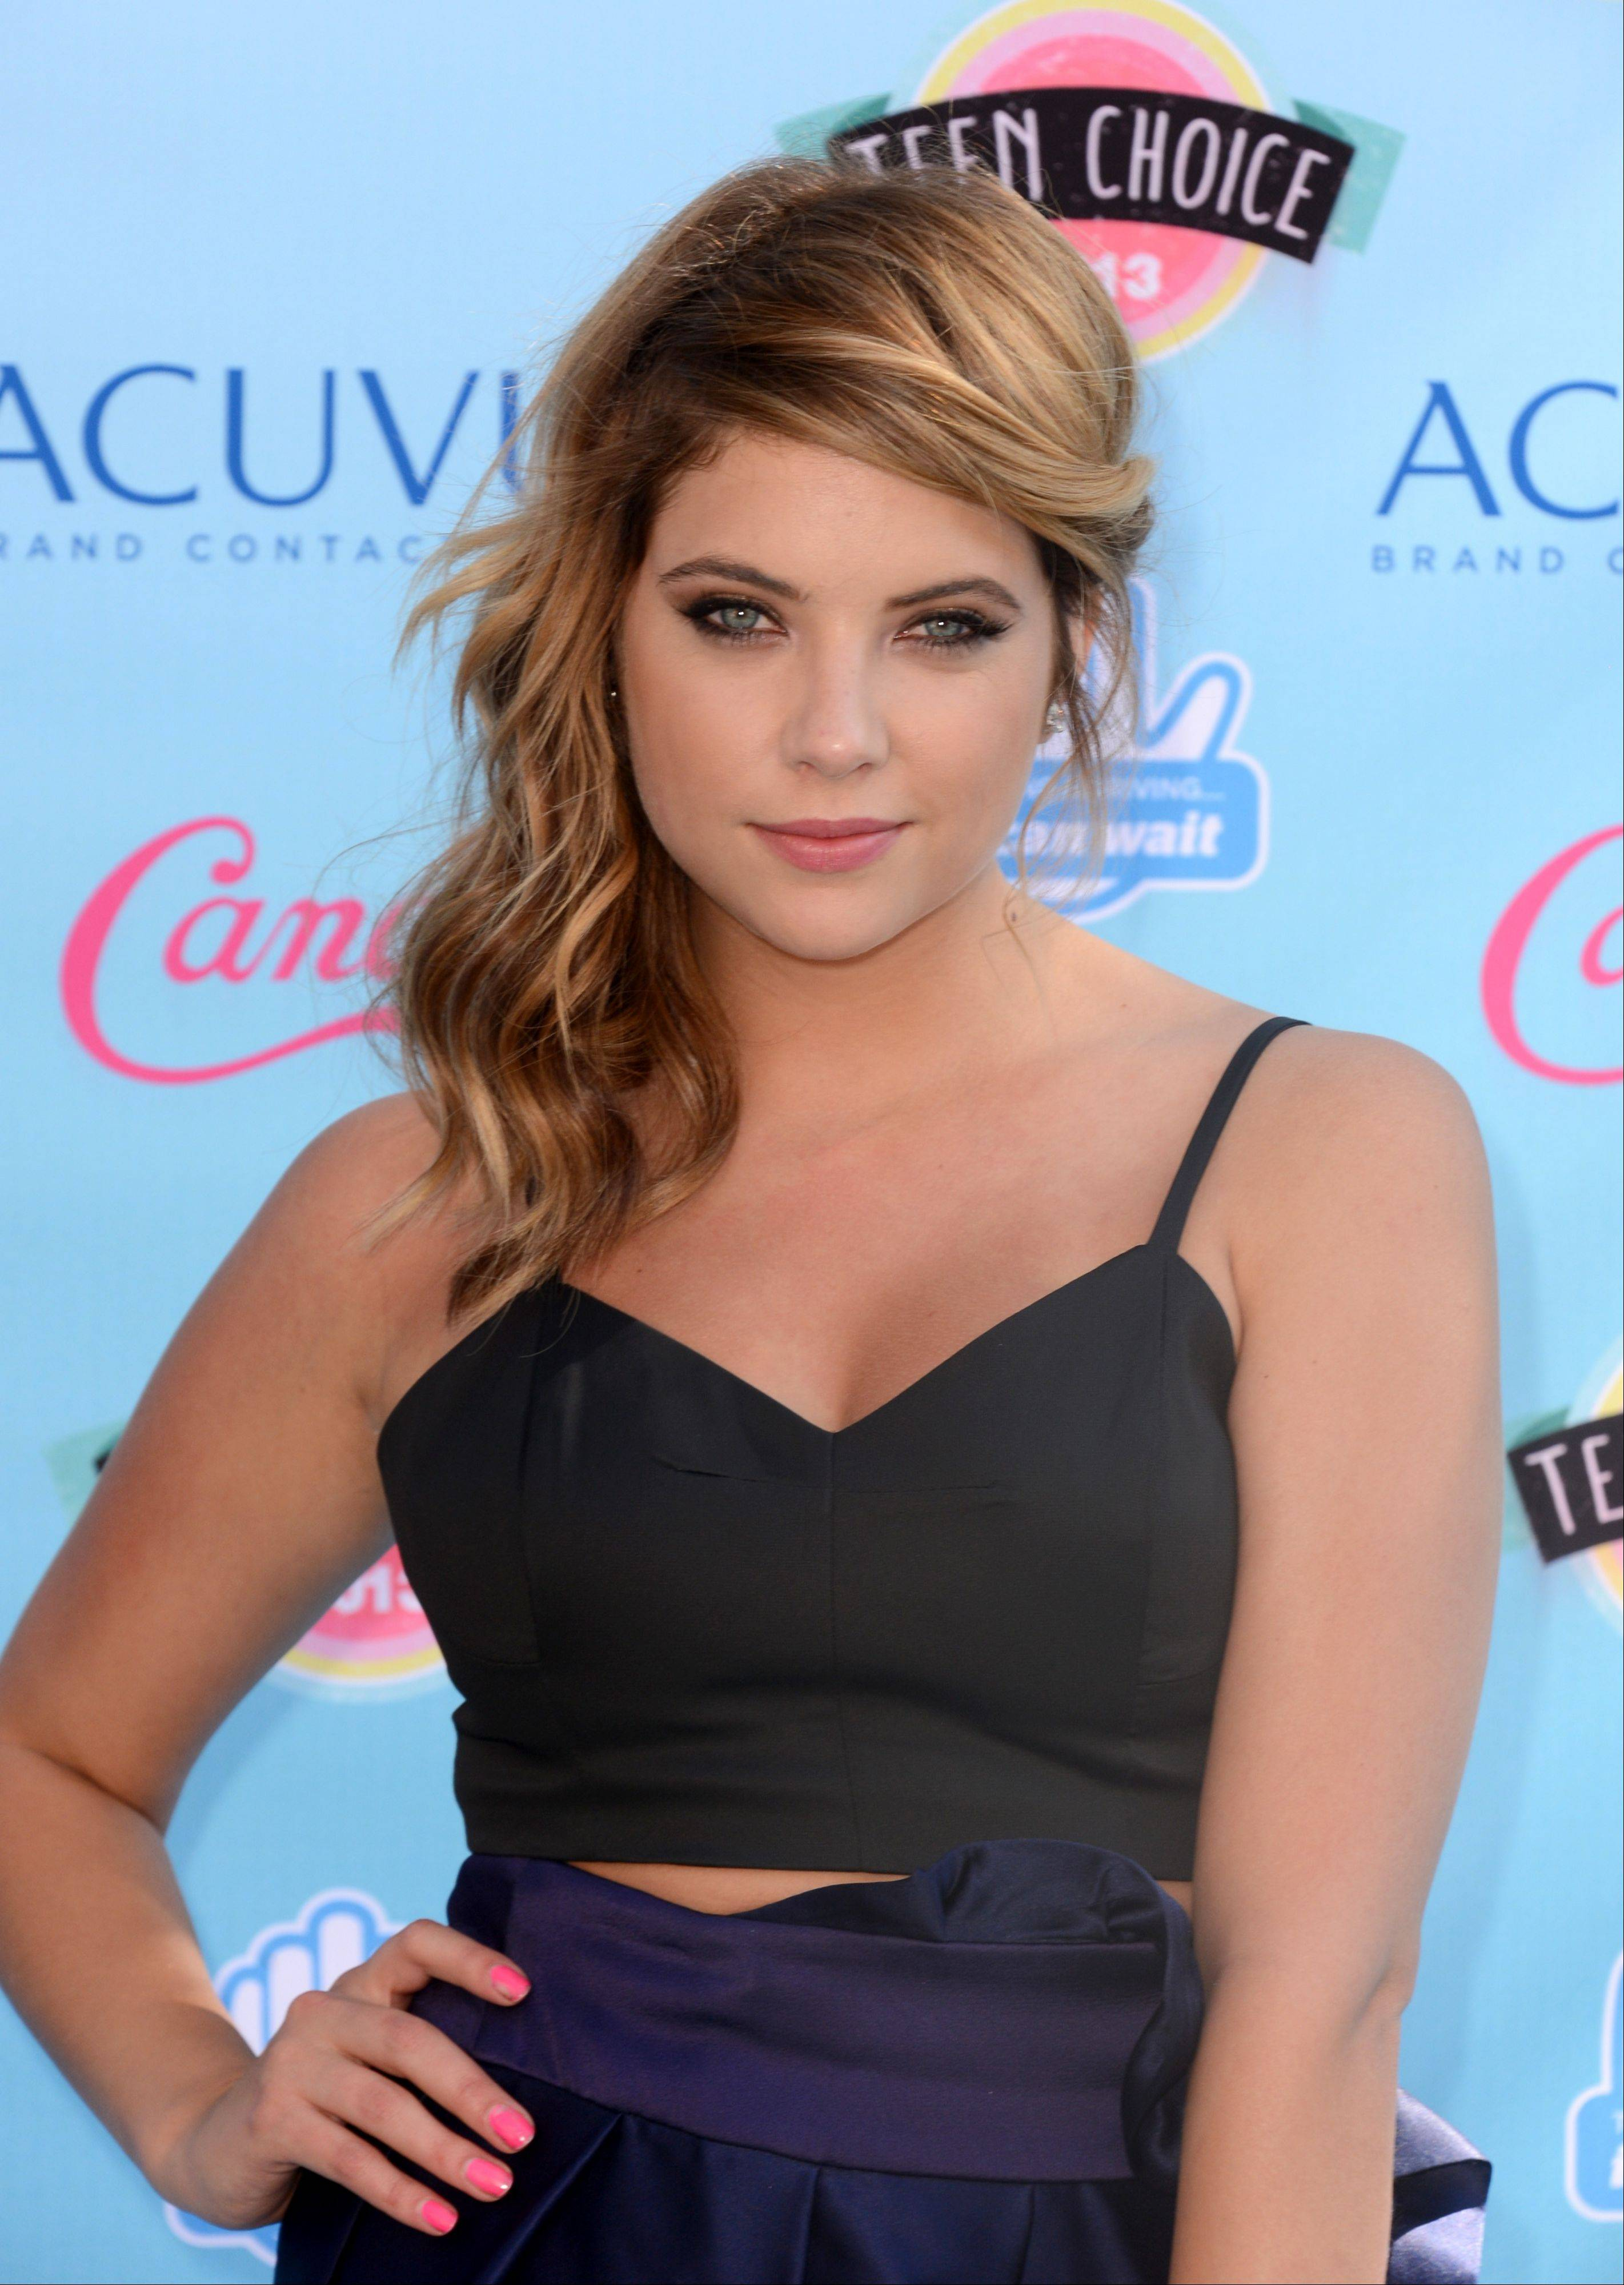 """Pretty Little Liars"" star Ashley Benson arrives at the Teen Choice Awards at the Gibson Amphitheater on Sunday in Los Angeles."